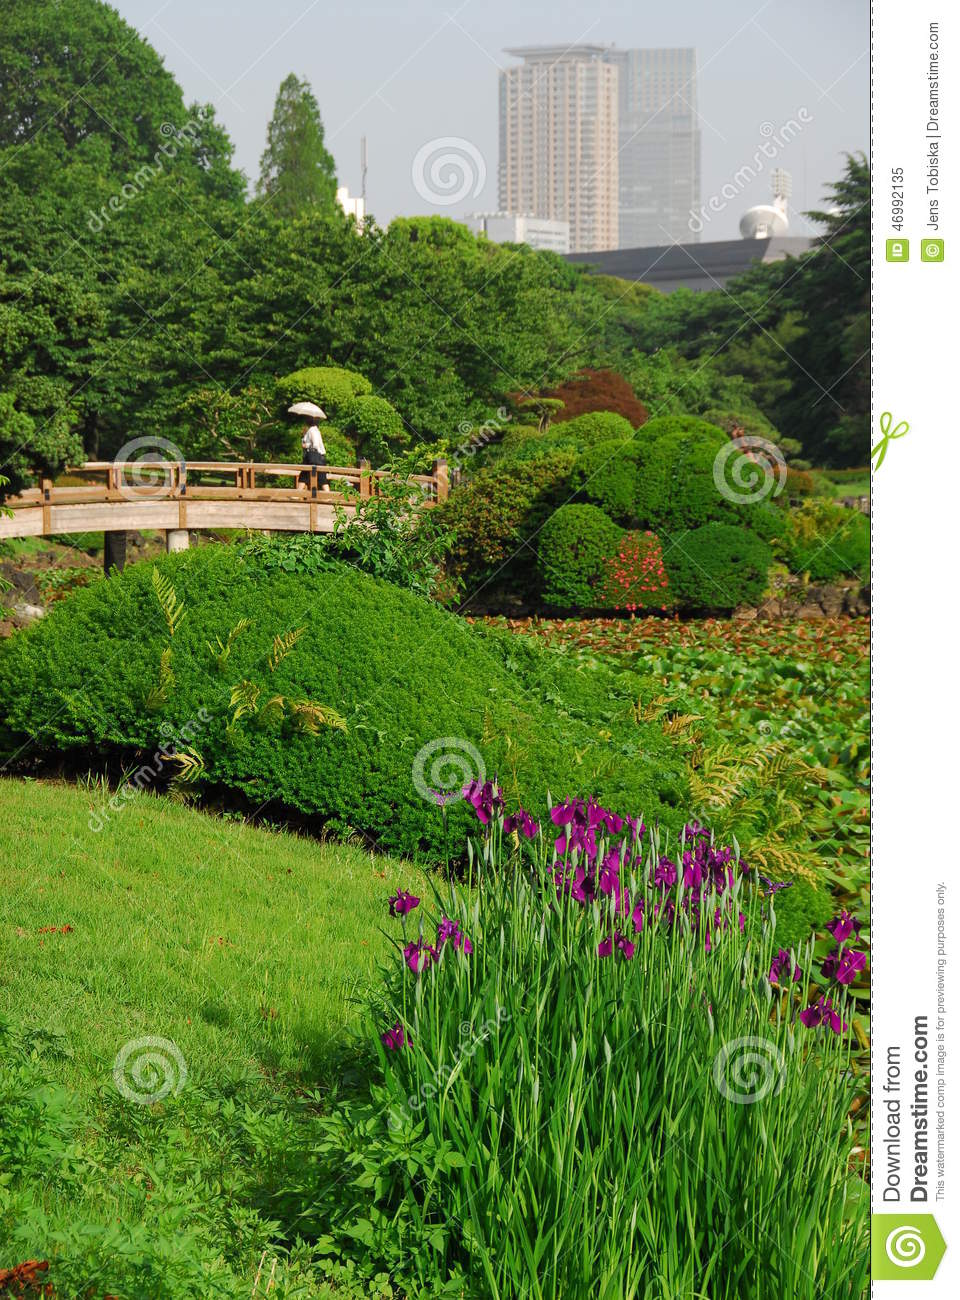 Garden City Stock Photo Image 46992135